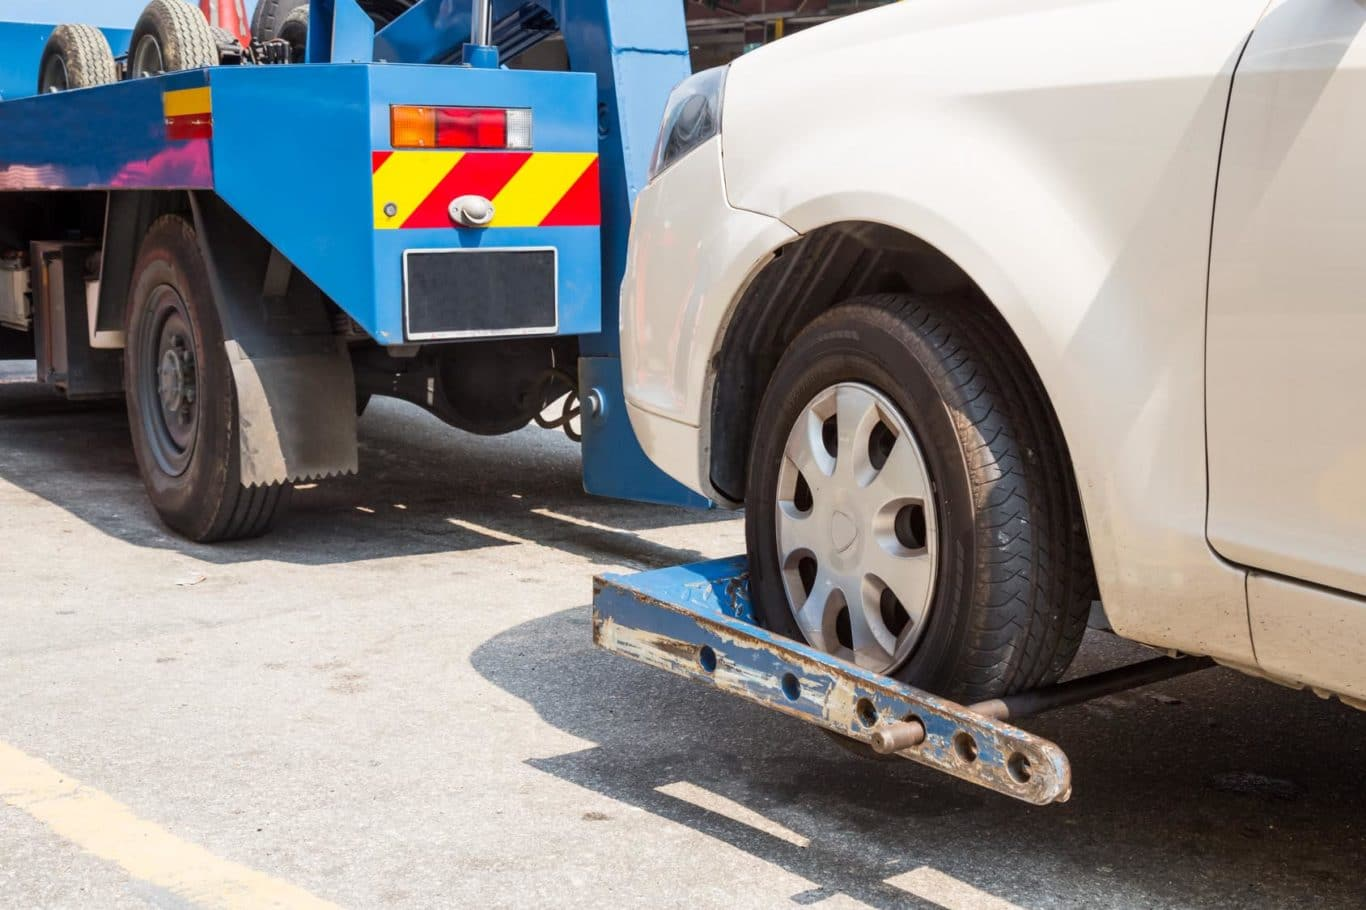 Lucan expert Car Towing services